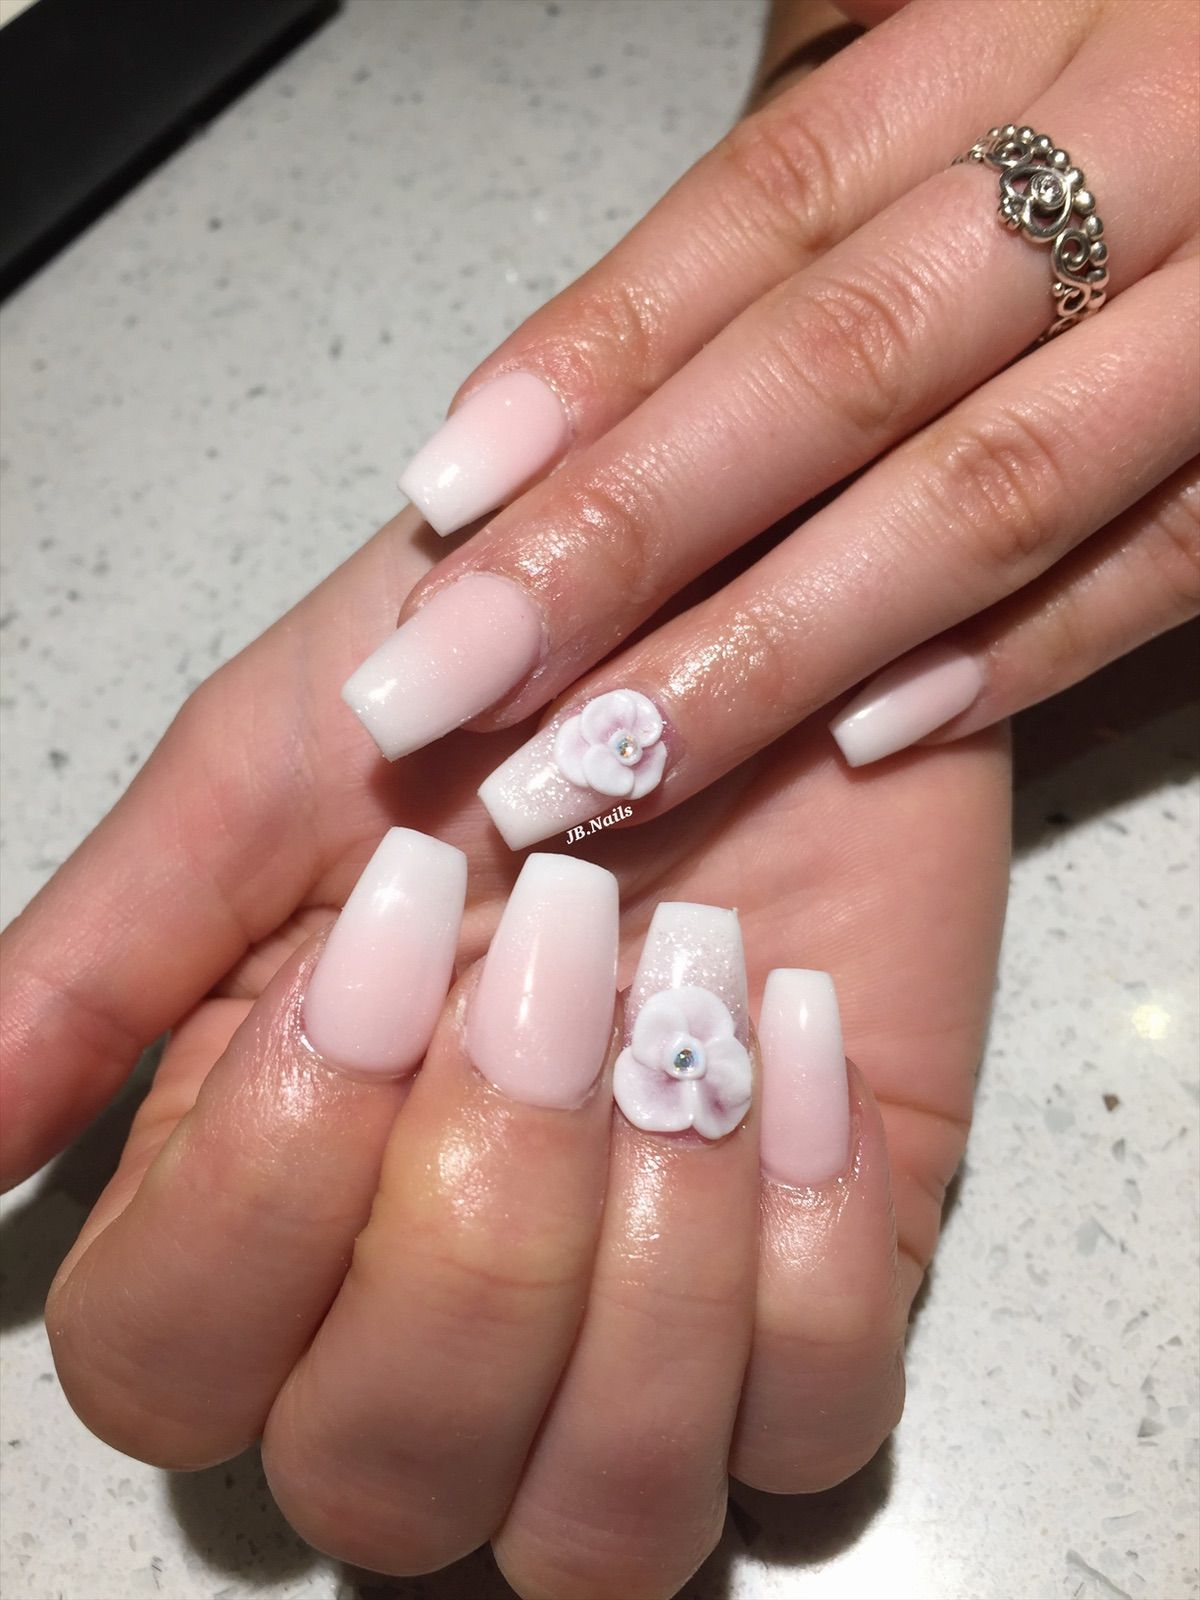 Simple With 3d Flowers Botanic Nails Nails Vibrant Nails